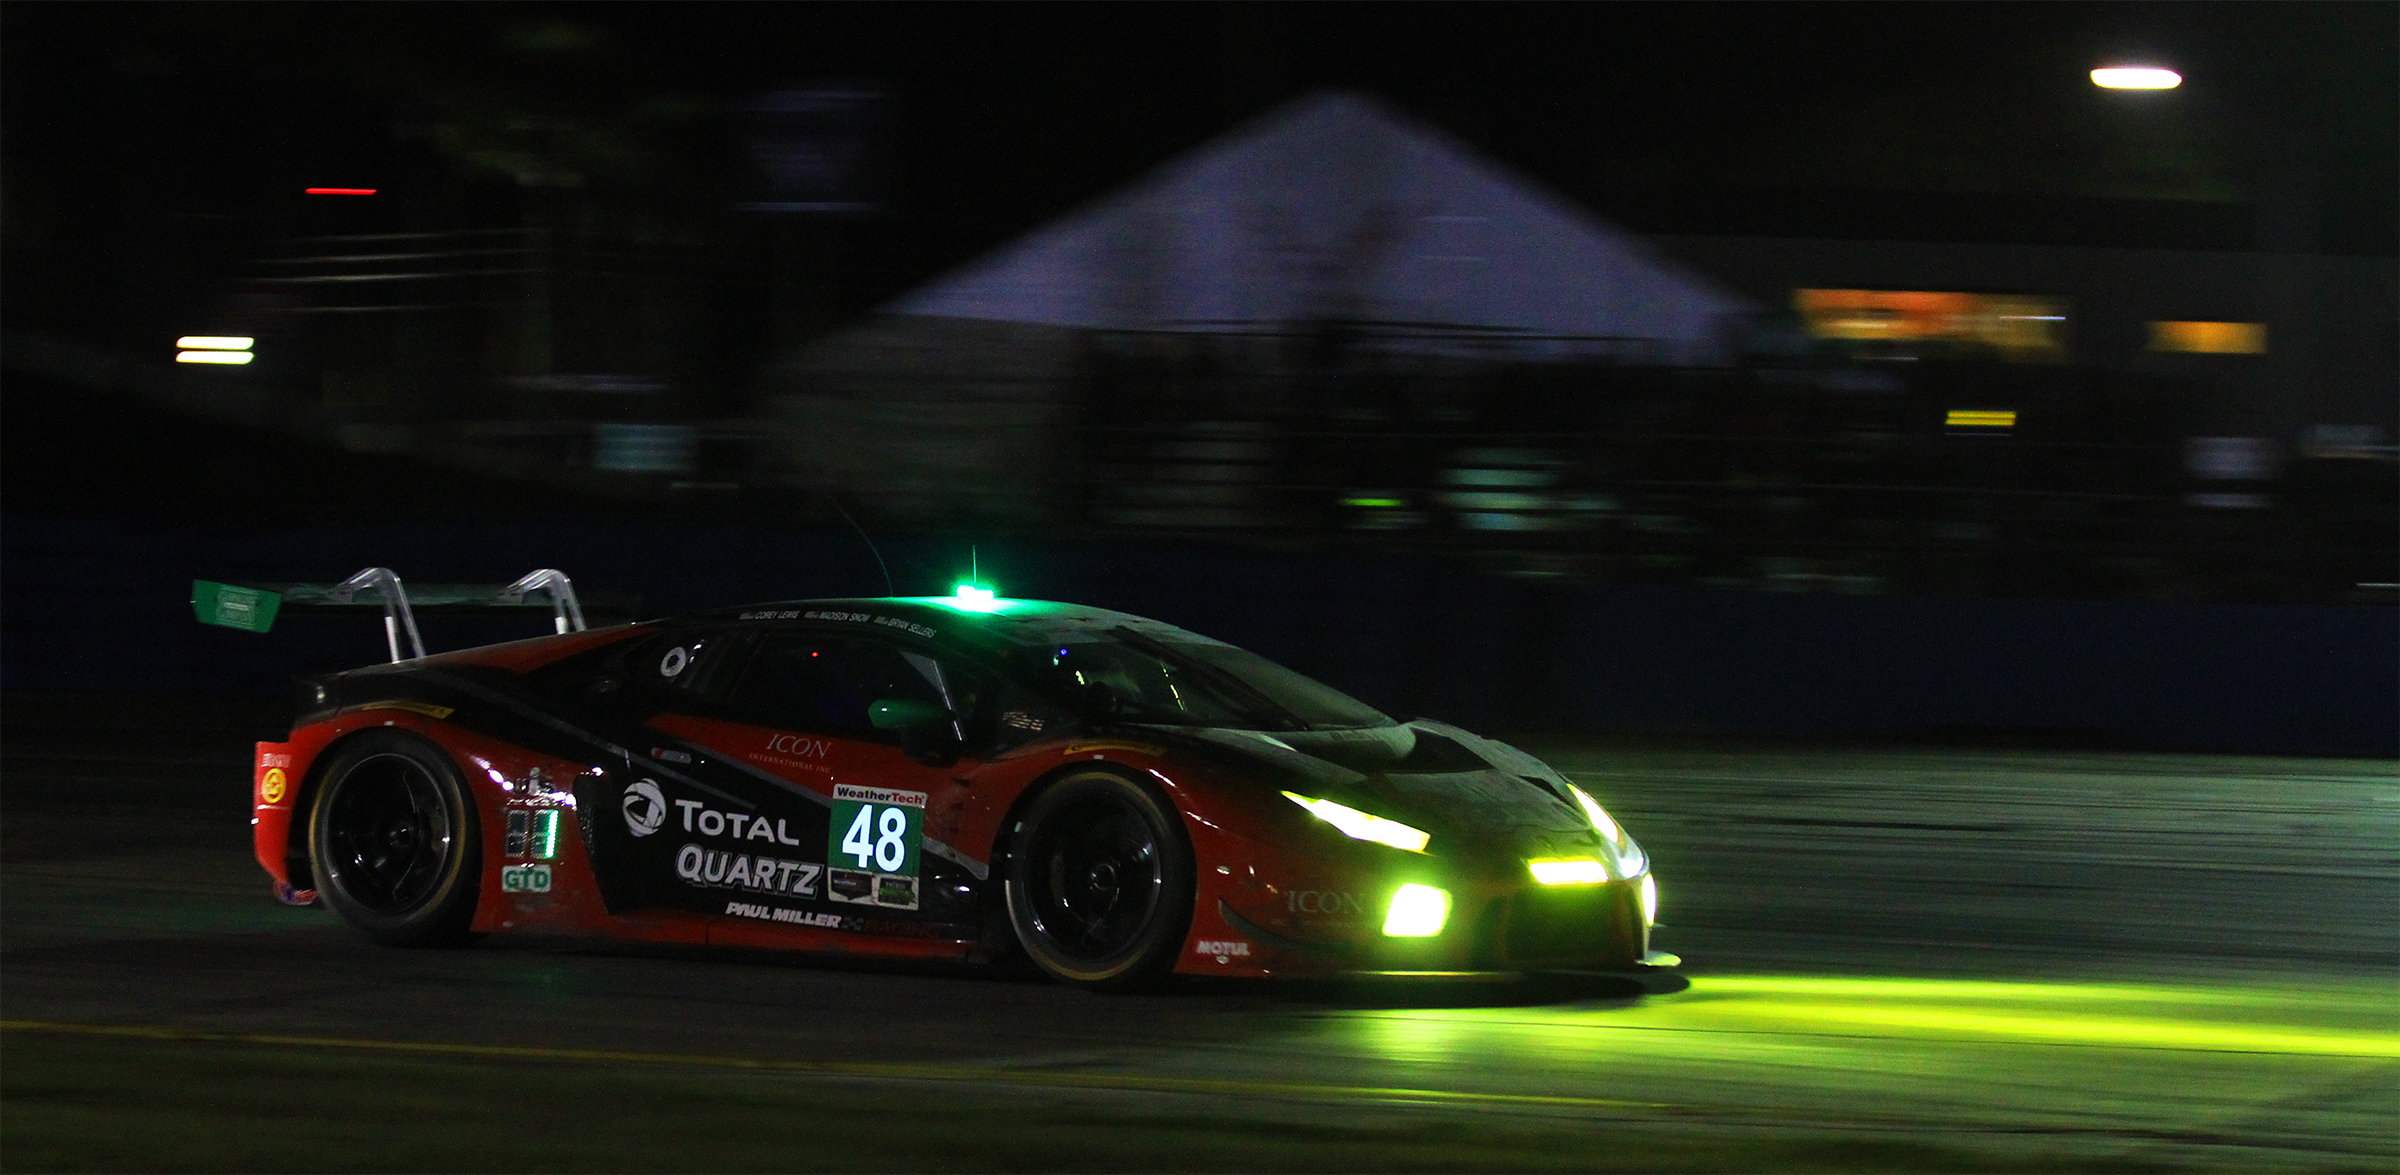 Brian Sellers brings the #48 Miller Racing Lamborghini home first in the GTD class at the 2018 Sebring 12 Hours. (Chris Jasurek/Epoch Times)